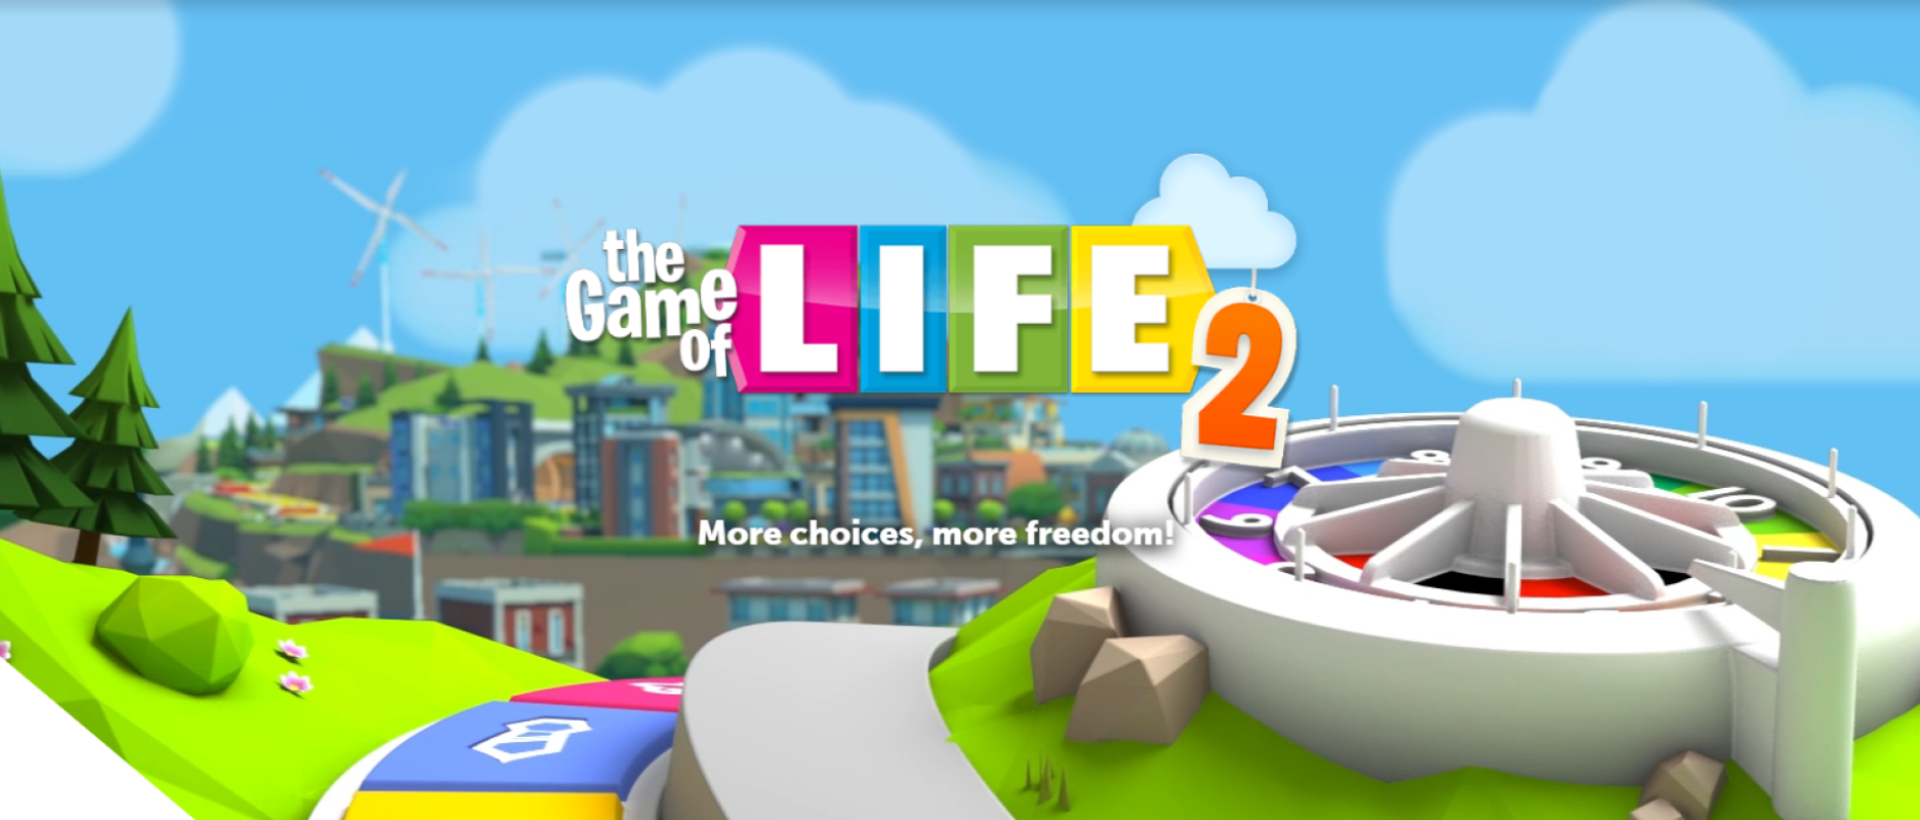 THE GAME OF LIFE 2